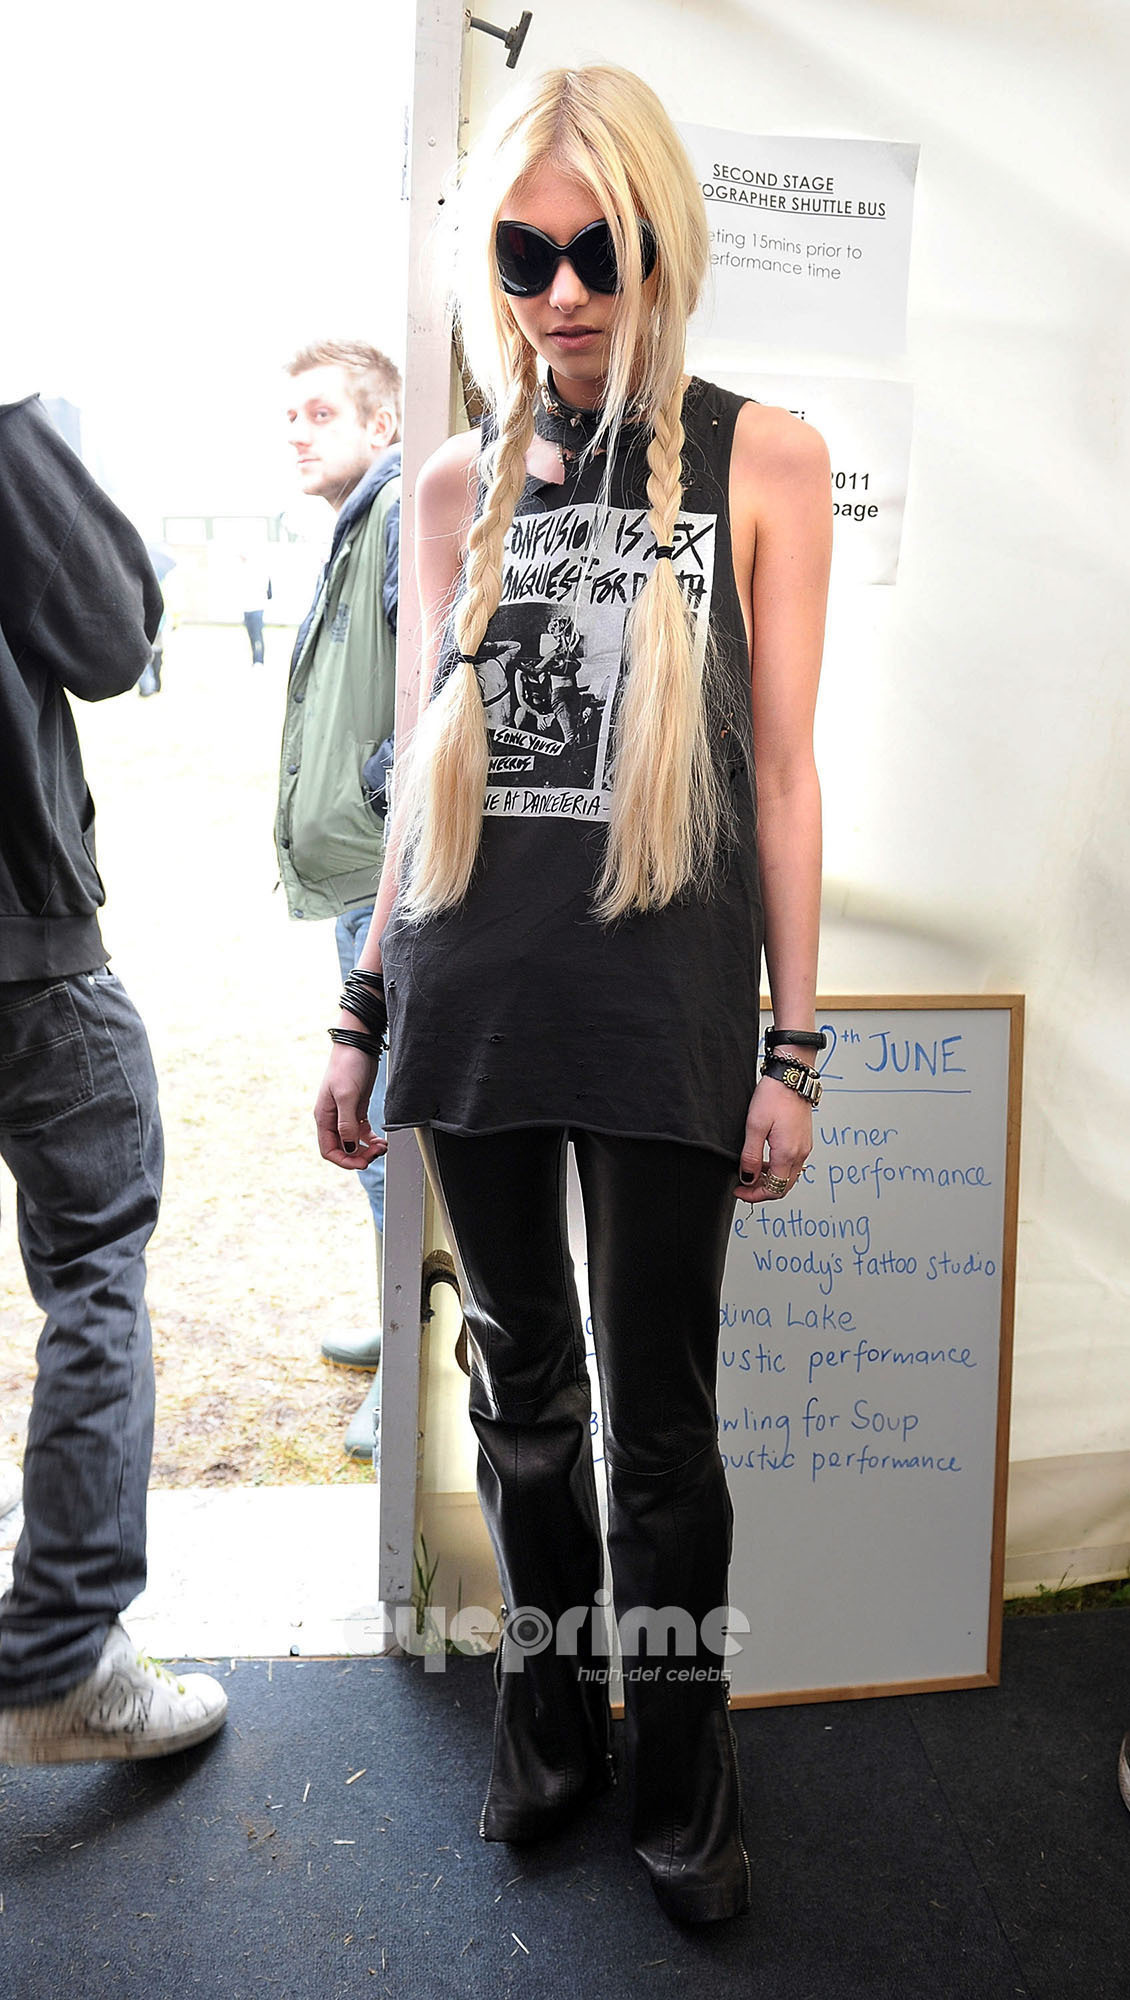 Taylor Momses poses for Photos during 2011 Download Festival, June 12